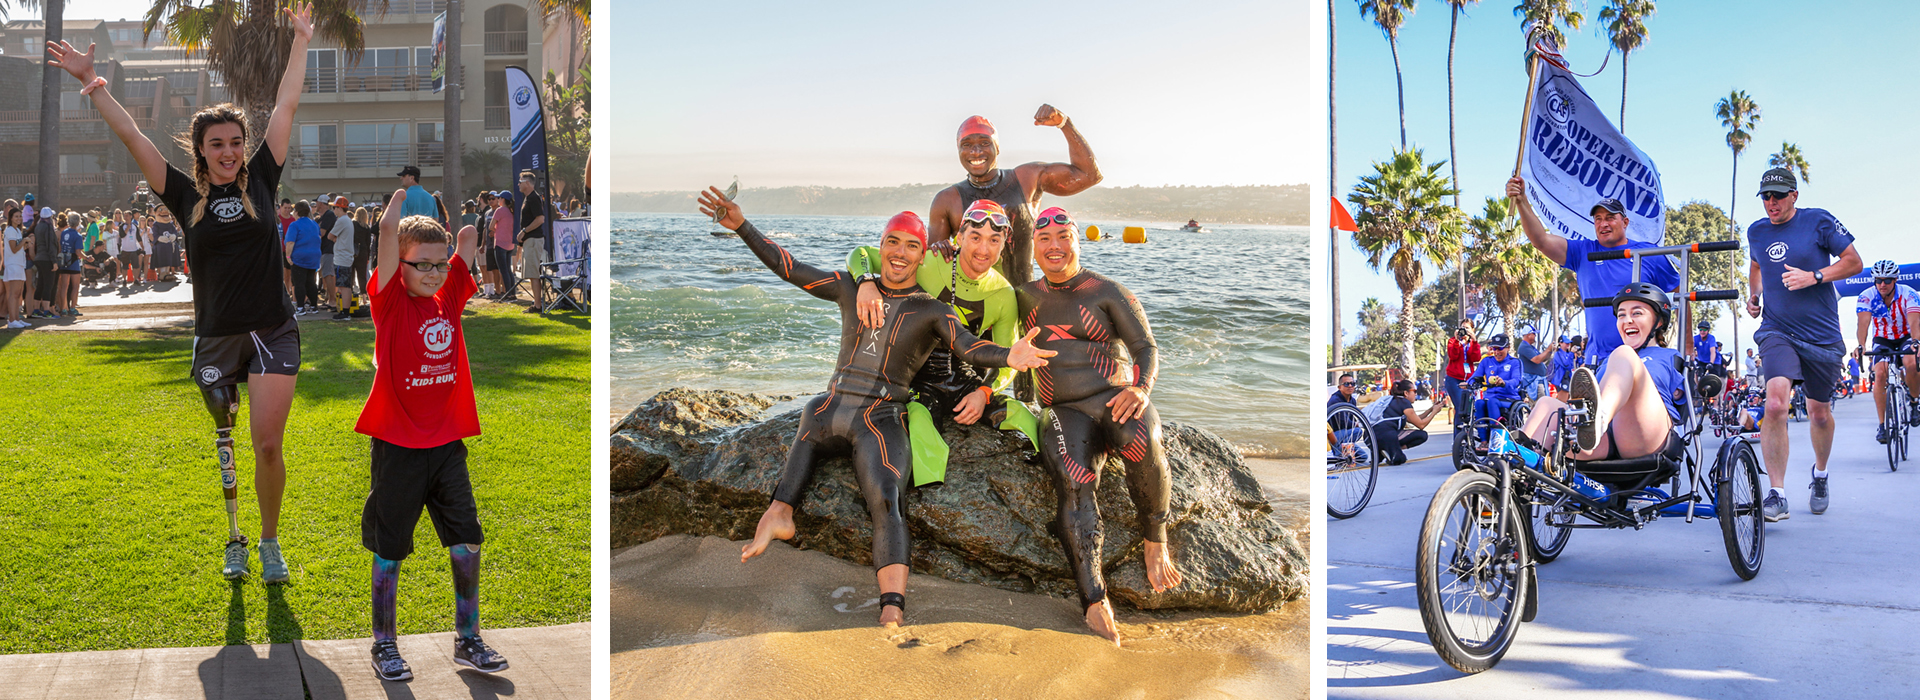 26th Annual Aspen Medical Products San Diego Triathlon Challenge